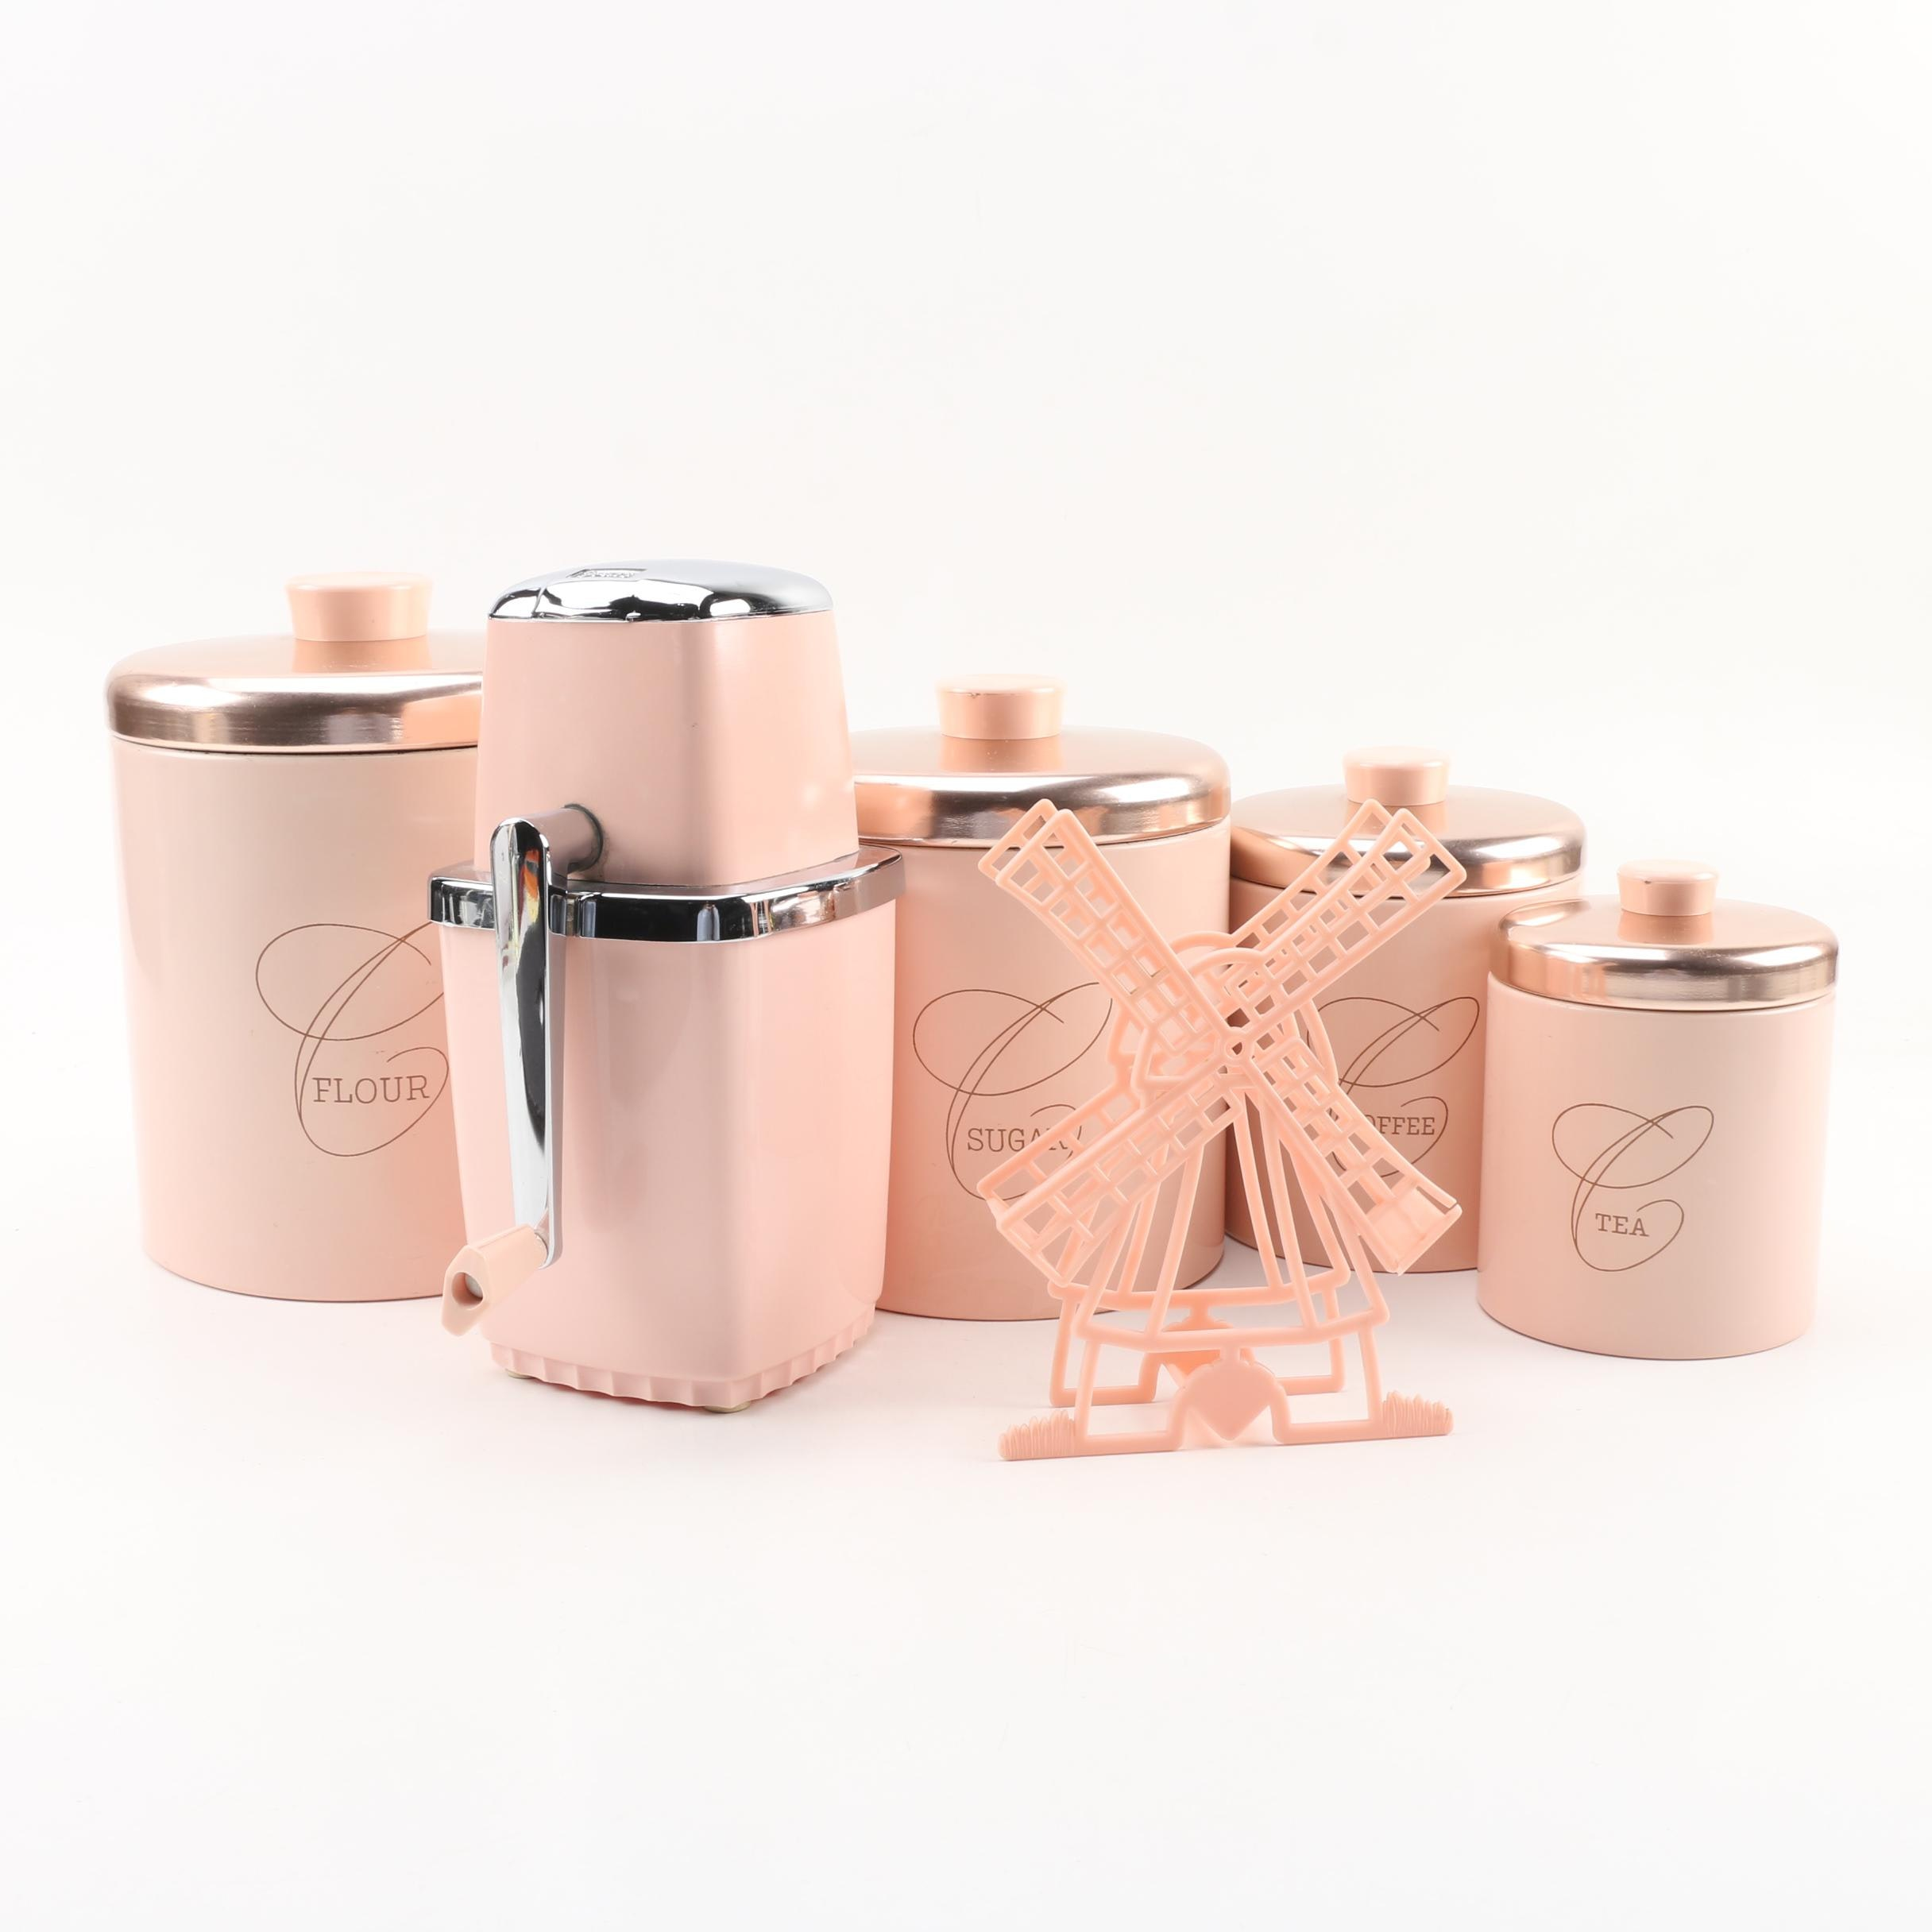 Ransburg Pink Kitchen Canisters with Sears Ice Crusher, Mid-Century